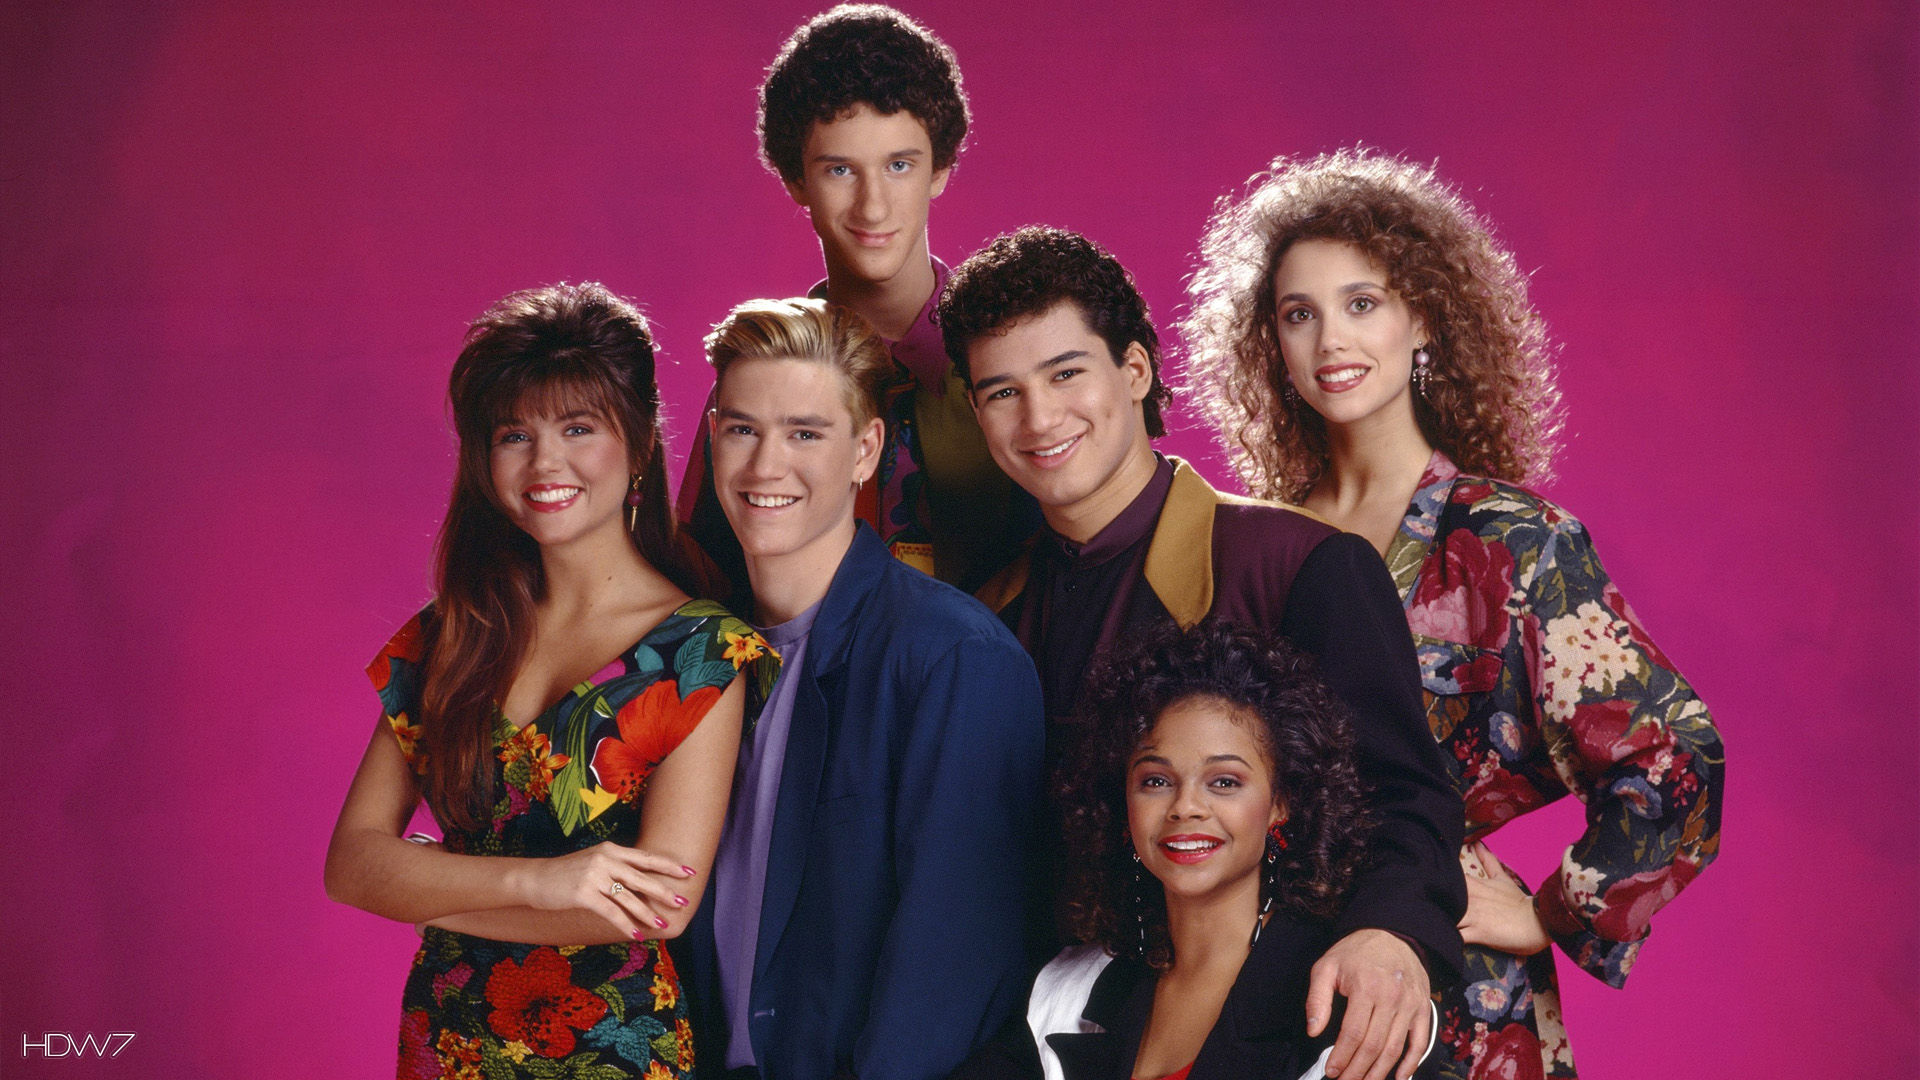 saved by the bell wallpaper